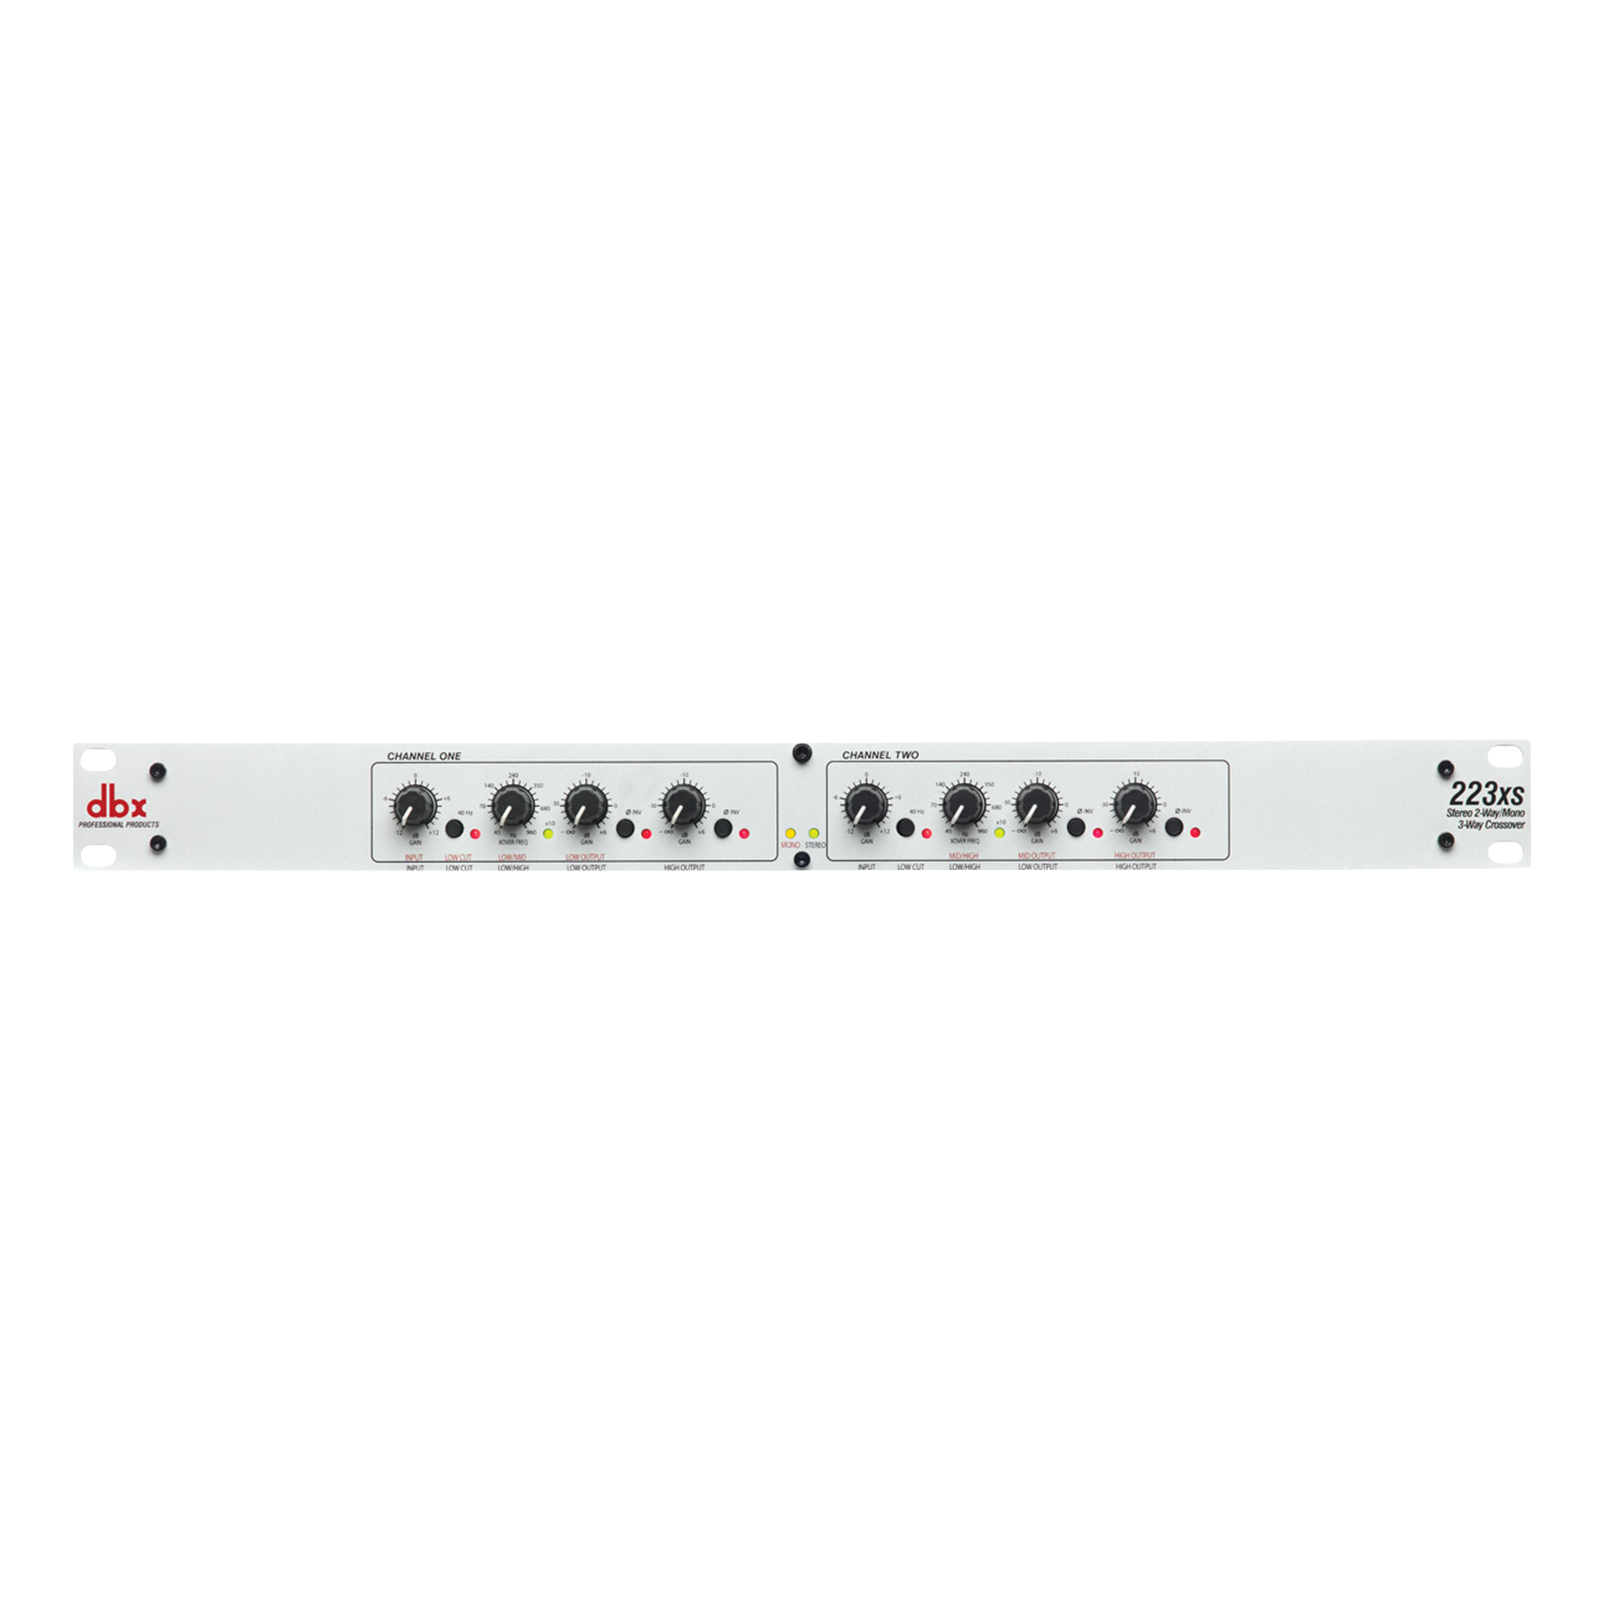 223xs - White - The dbx 223xs is a dual channel crossover with all the features you would expect from a professional product. - Hero